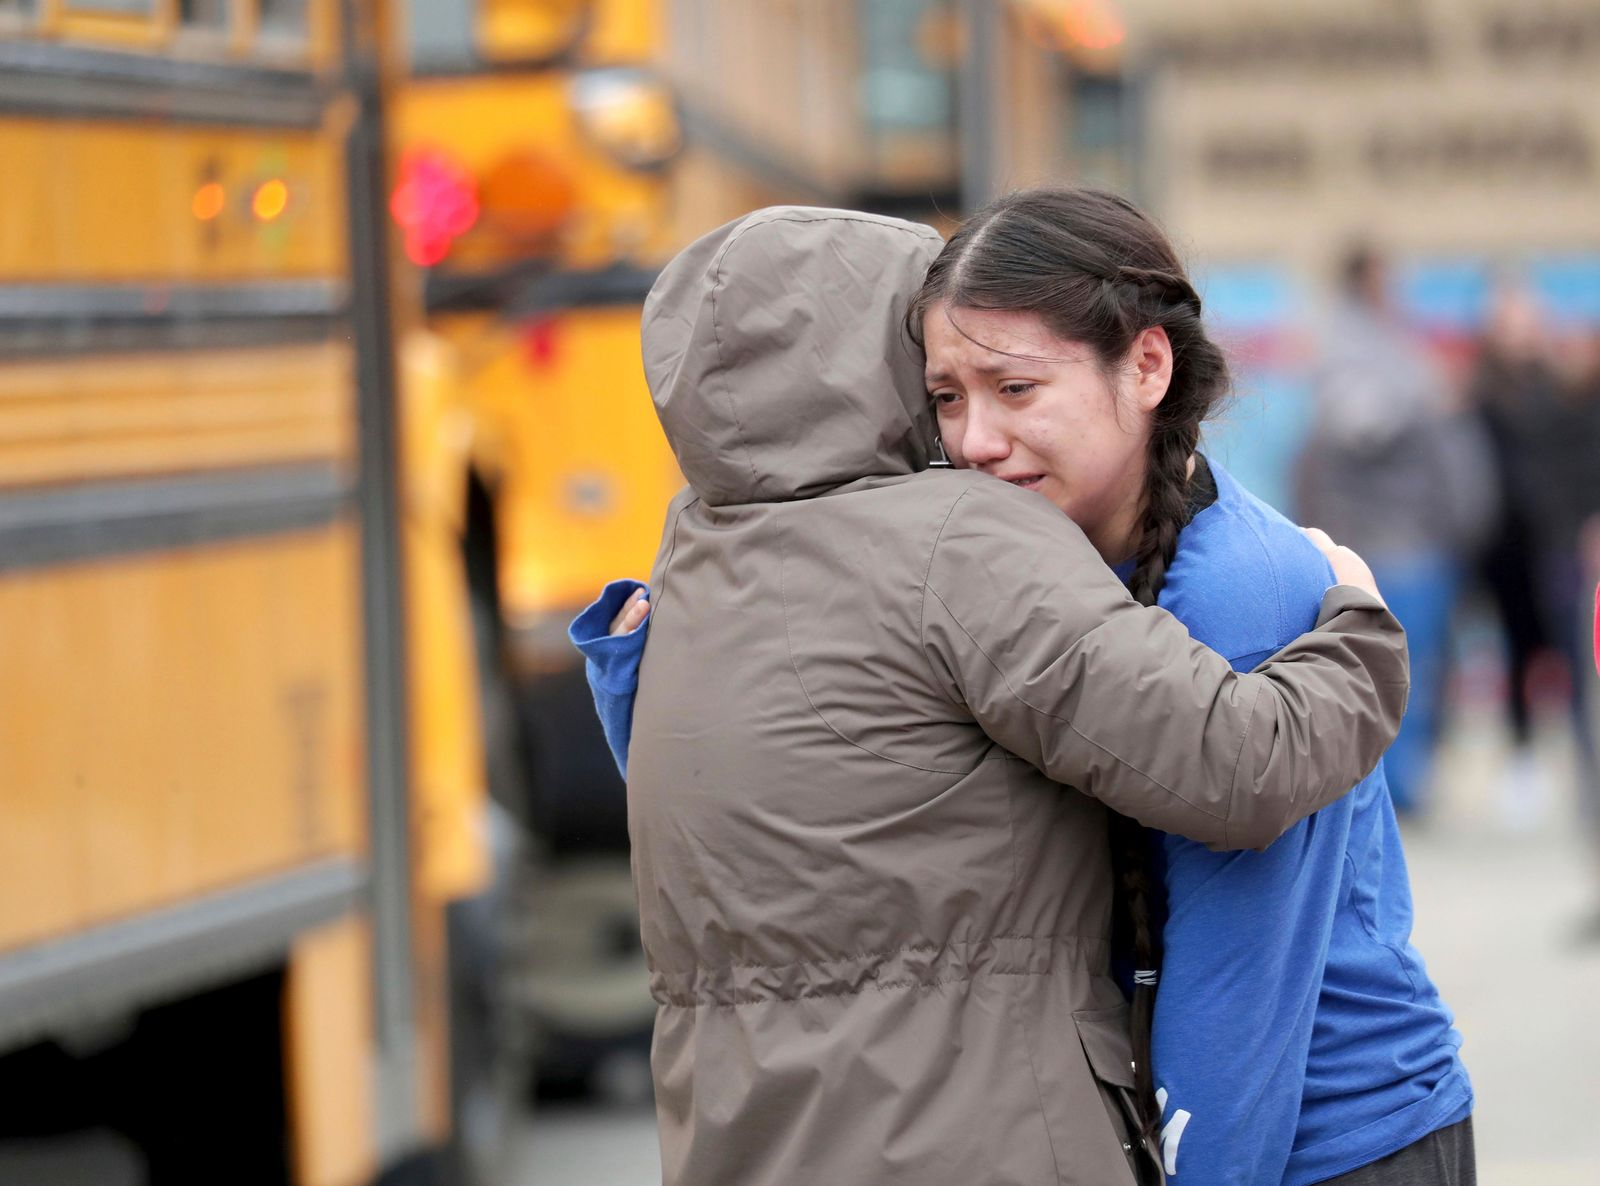 Gabriela Mauricio, right, a 14-year-old freshman, hugs her mother Meche Mauricio, after the two were reunited outside Waukesha South High School in Waukesha on Monday, Dec. 2, 2019. (Mike De Sisti/Milwaukee Journal-Sentinel via AP)